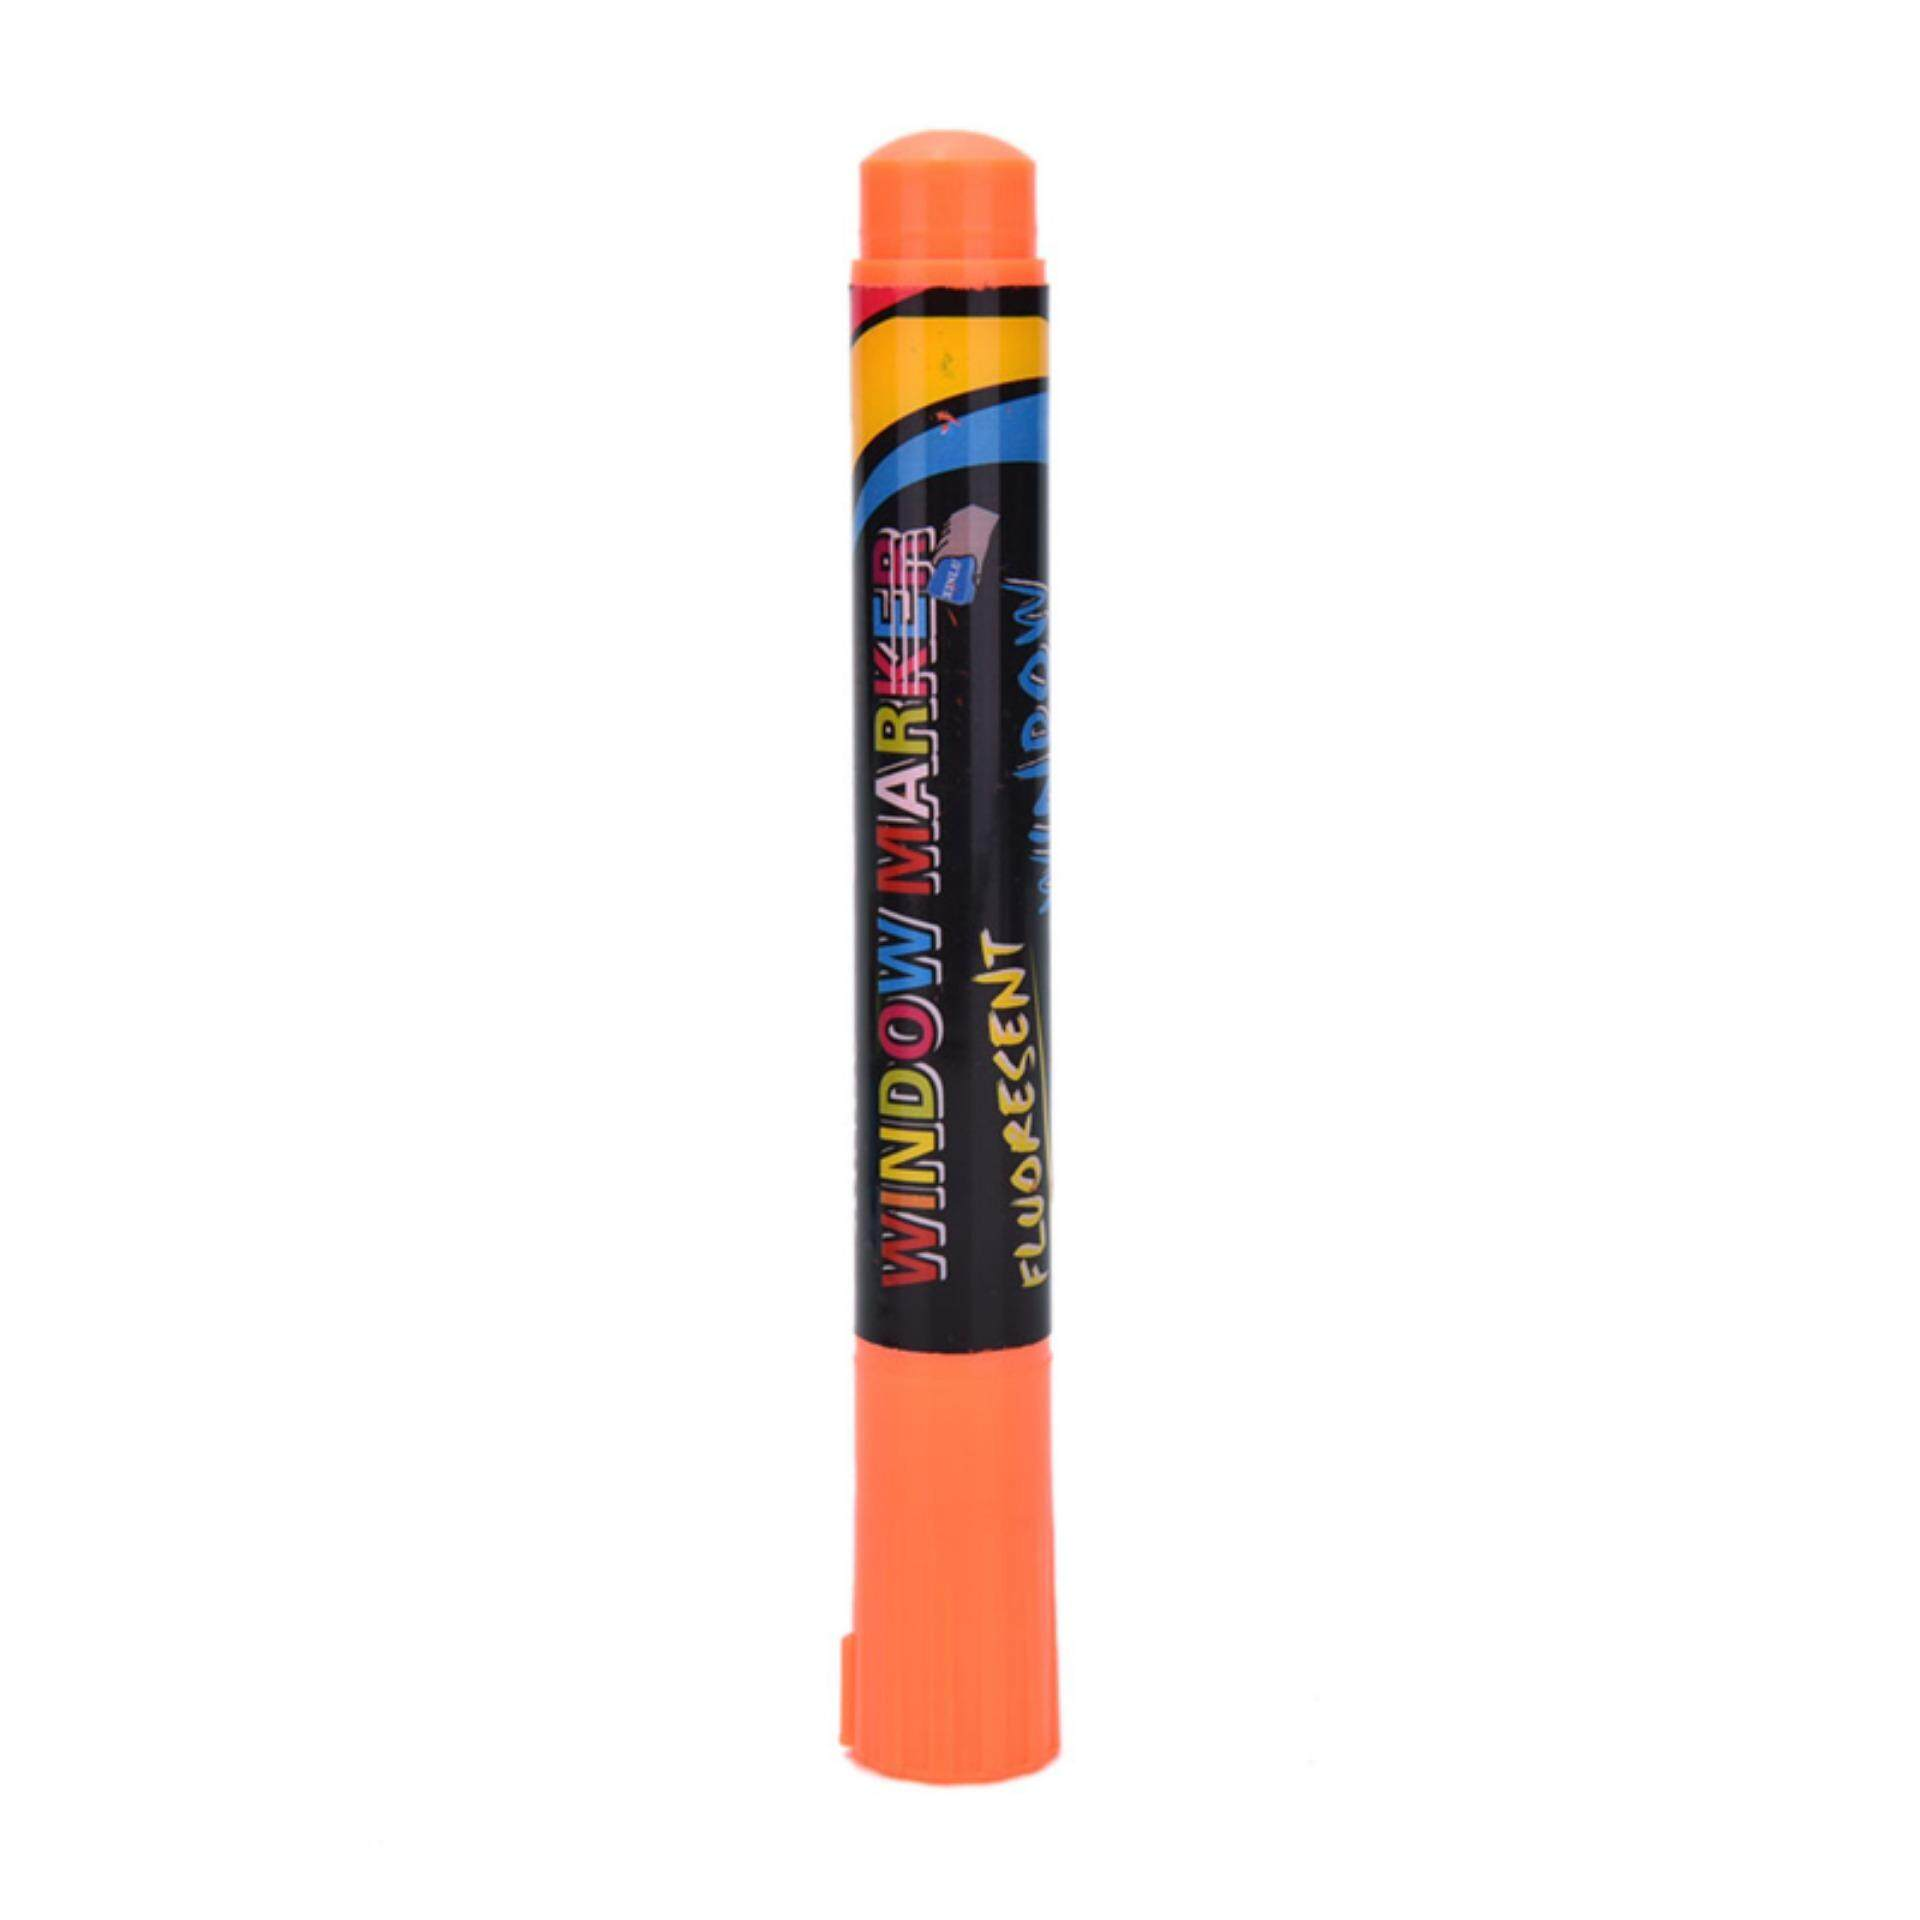 Liquid Chalk Pen Marker For Glass Windows Chalkboard Blackboard